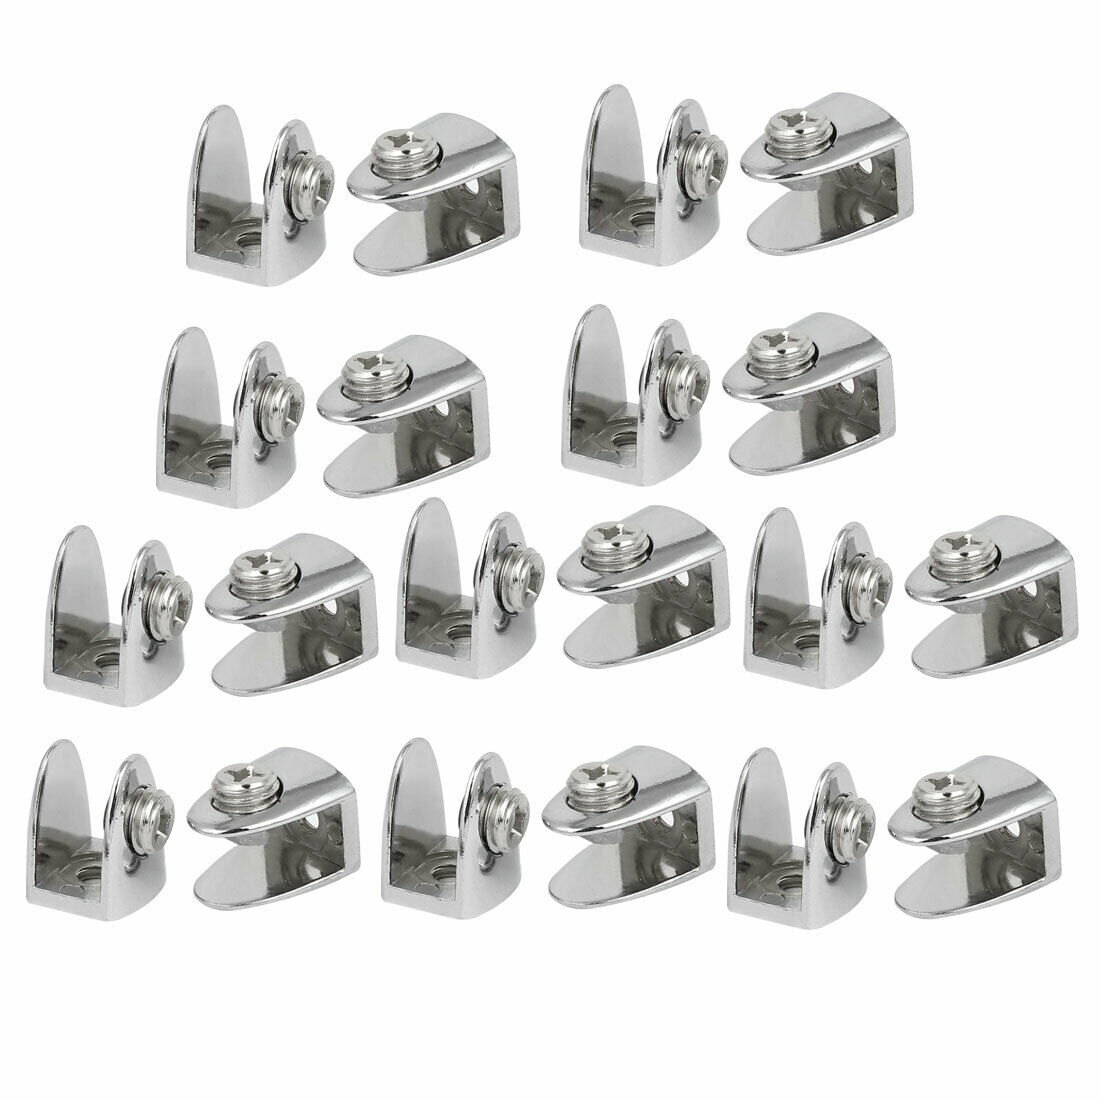 6mm-9mm Thickness Alloy Semi-Circle Shape Glass Shelf Clamp Clip Support 20pcs